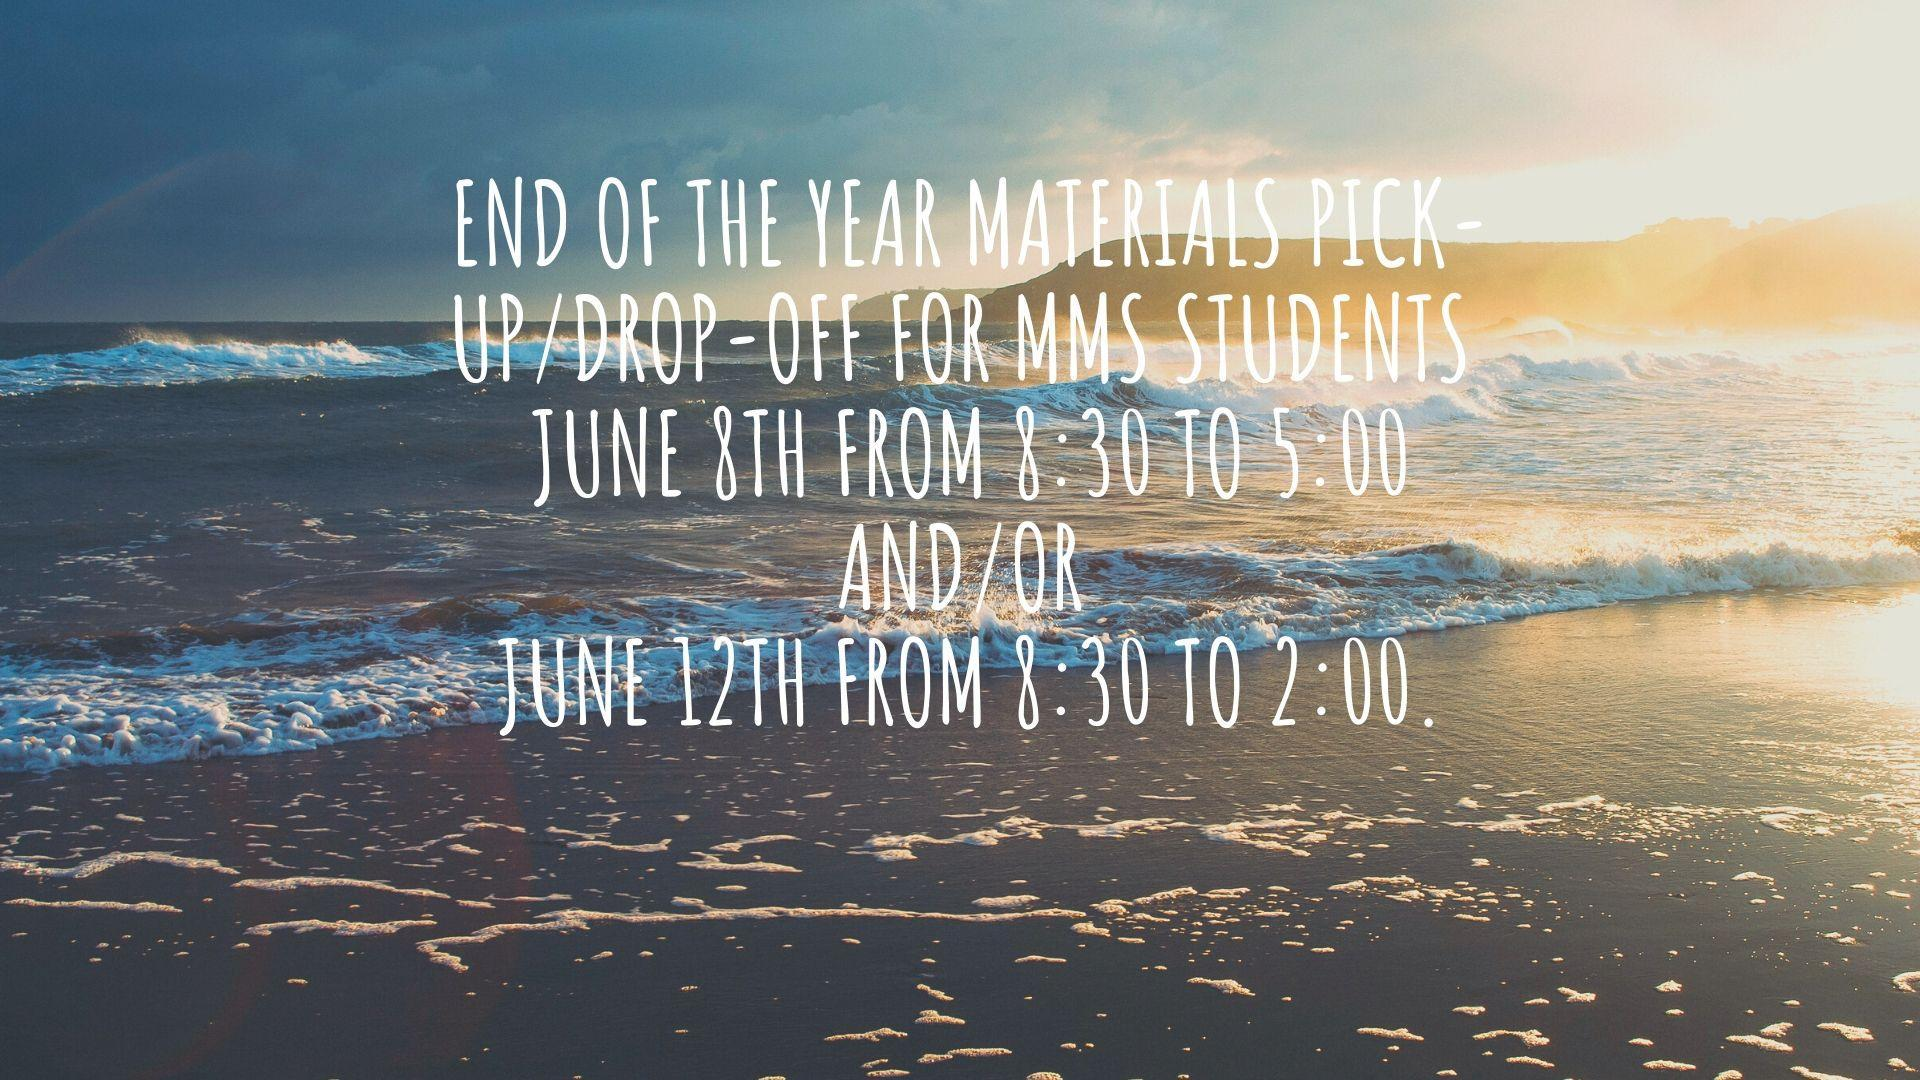 end of the year info